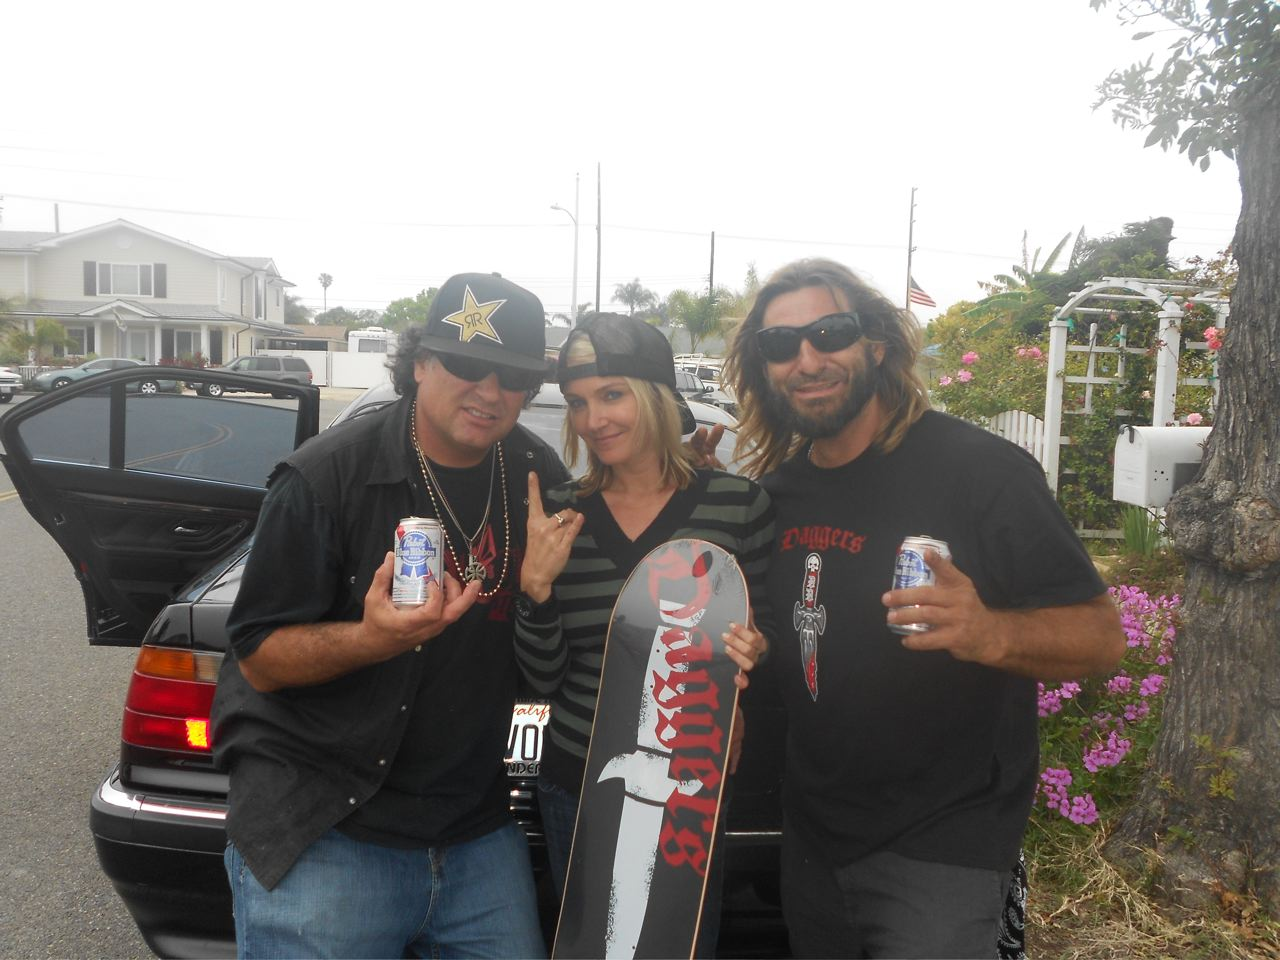 Dave Duncan, Jen O'Brien and Eddie Reategui. Photo: Courtesy of Dave Duncan